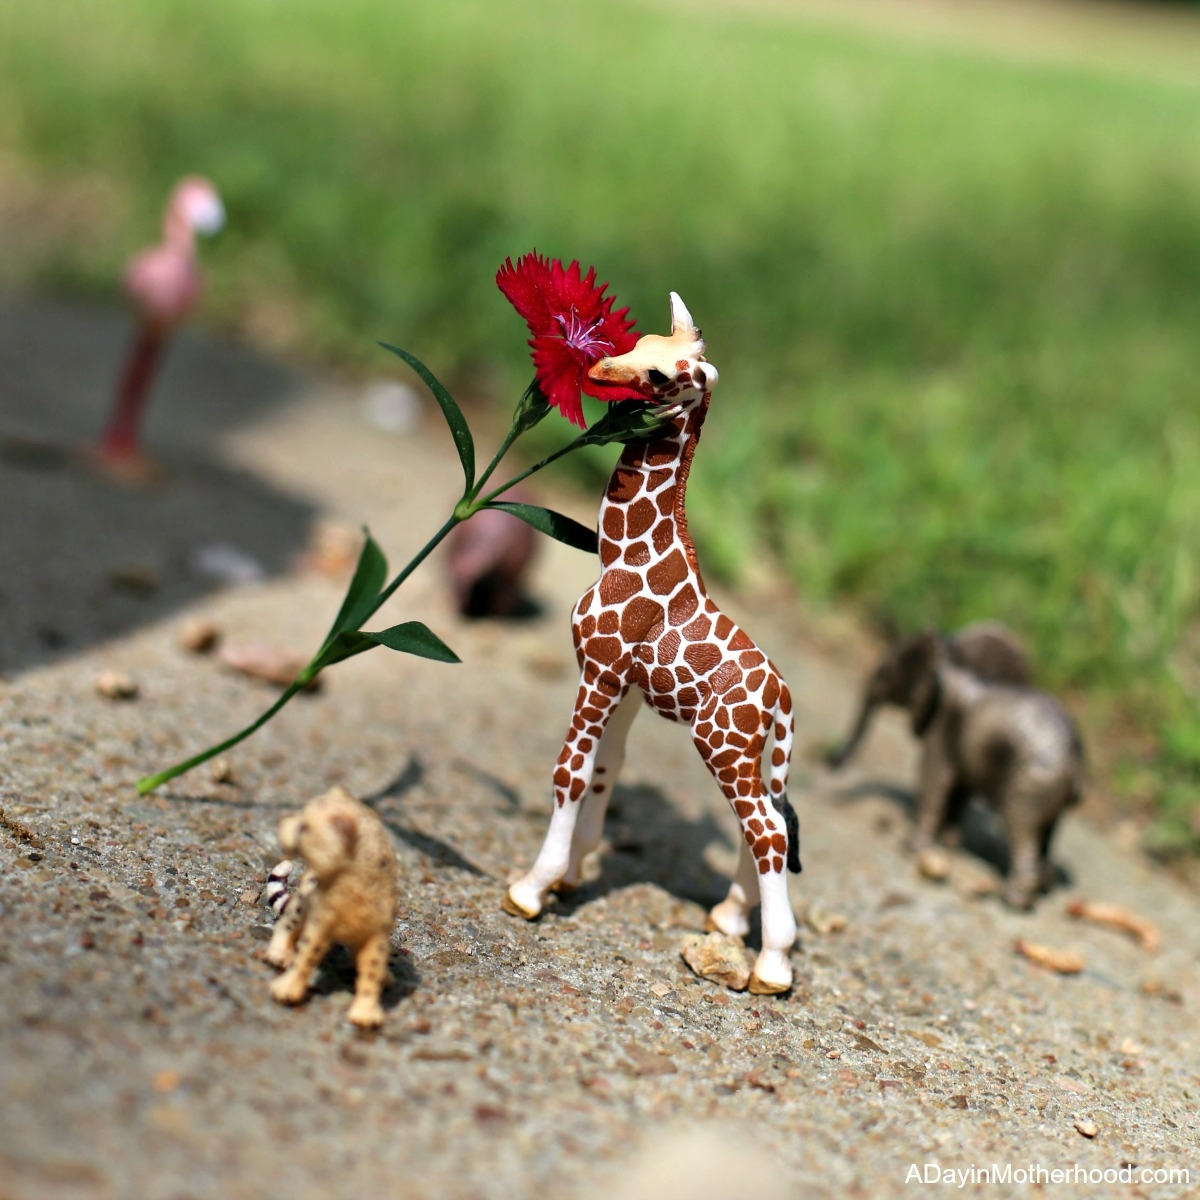 Let Their Imagination Soar with Wild Animals from Schleich Figurines like this giraffe